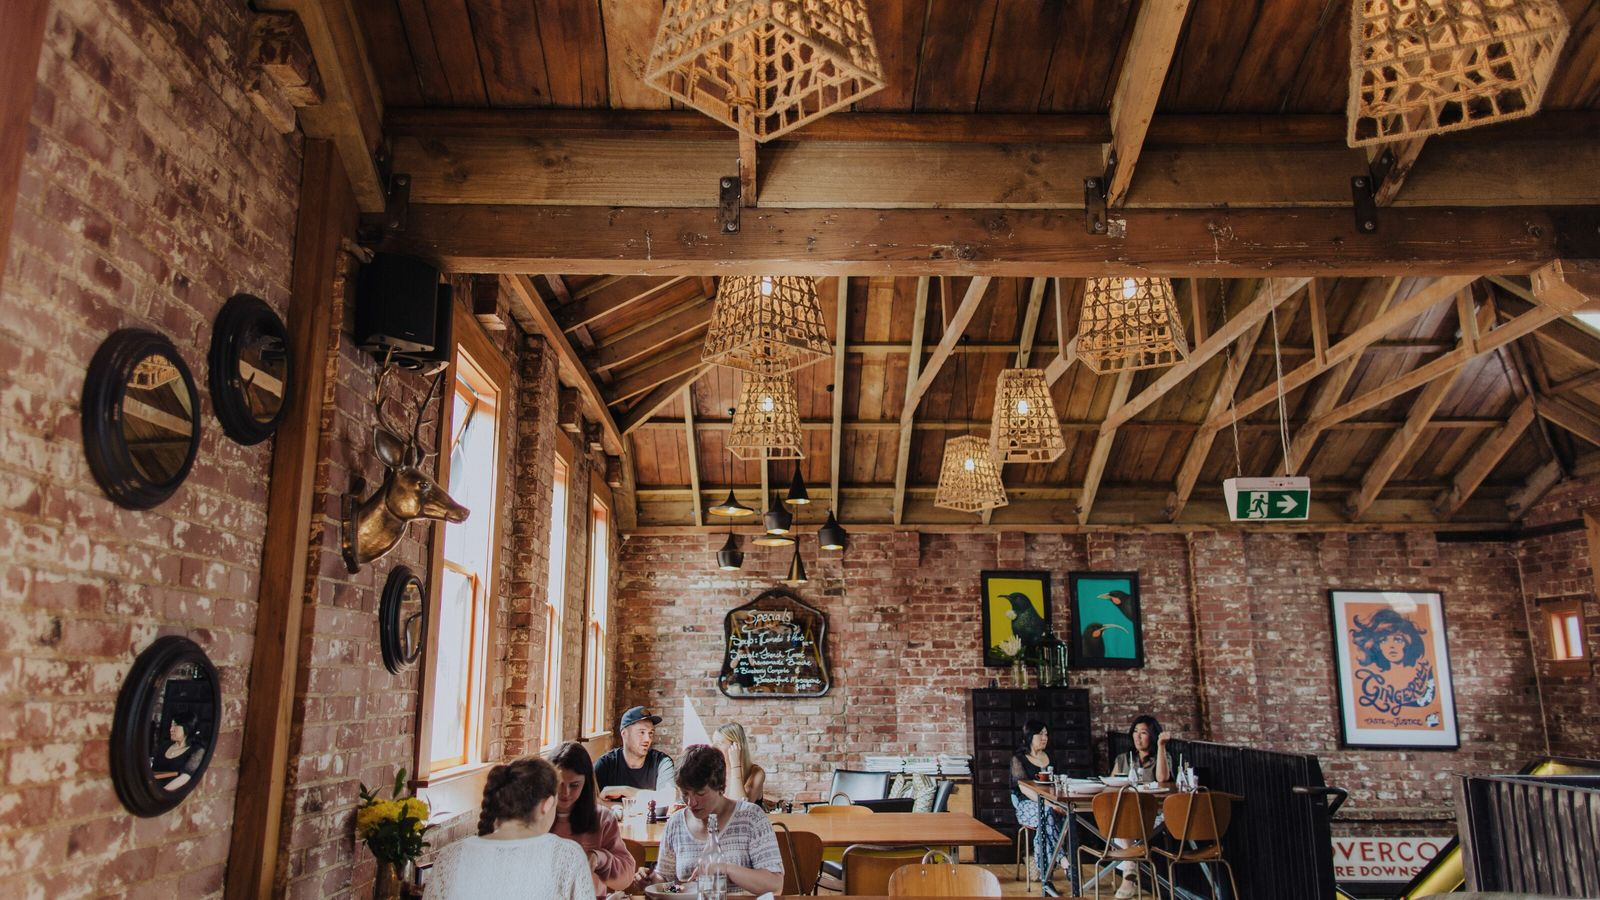 Interior of Vogel St Kitchen, an industrial dining space serving wood-fired pizzas.